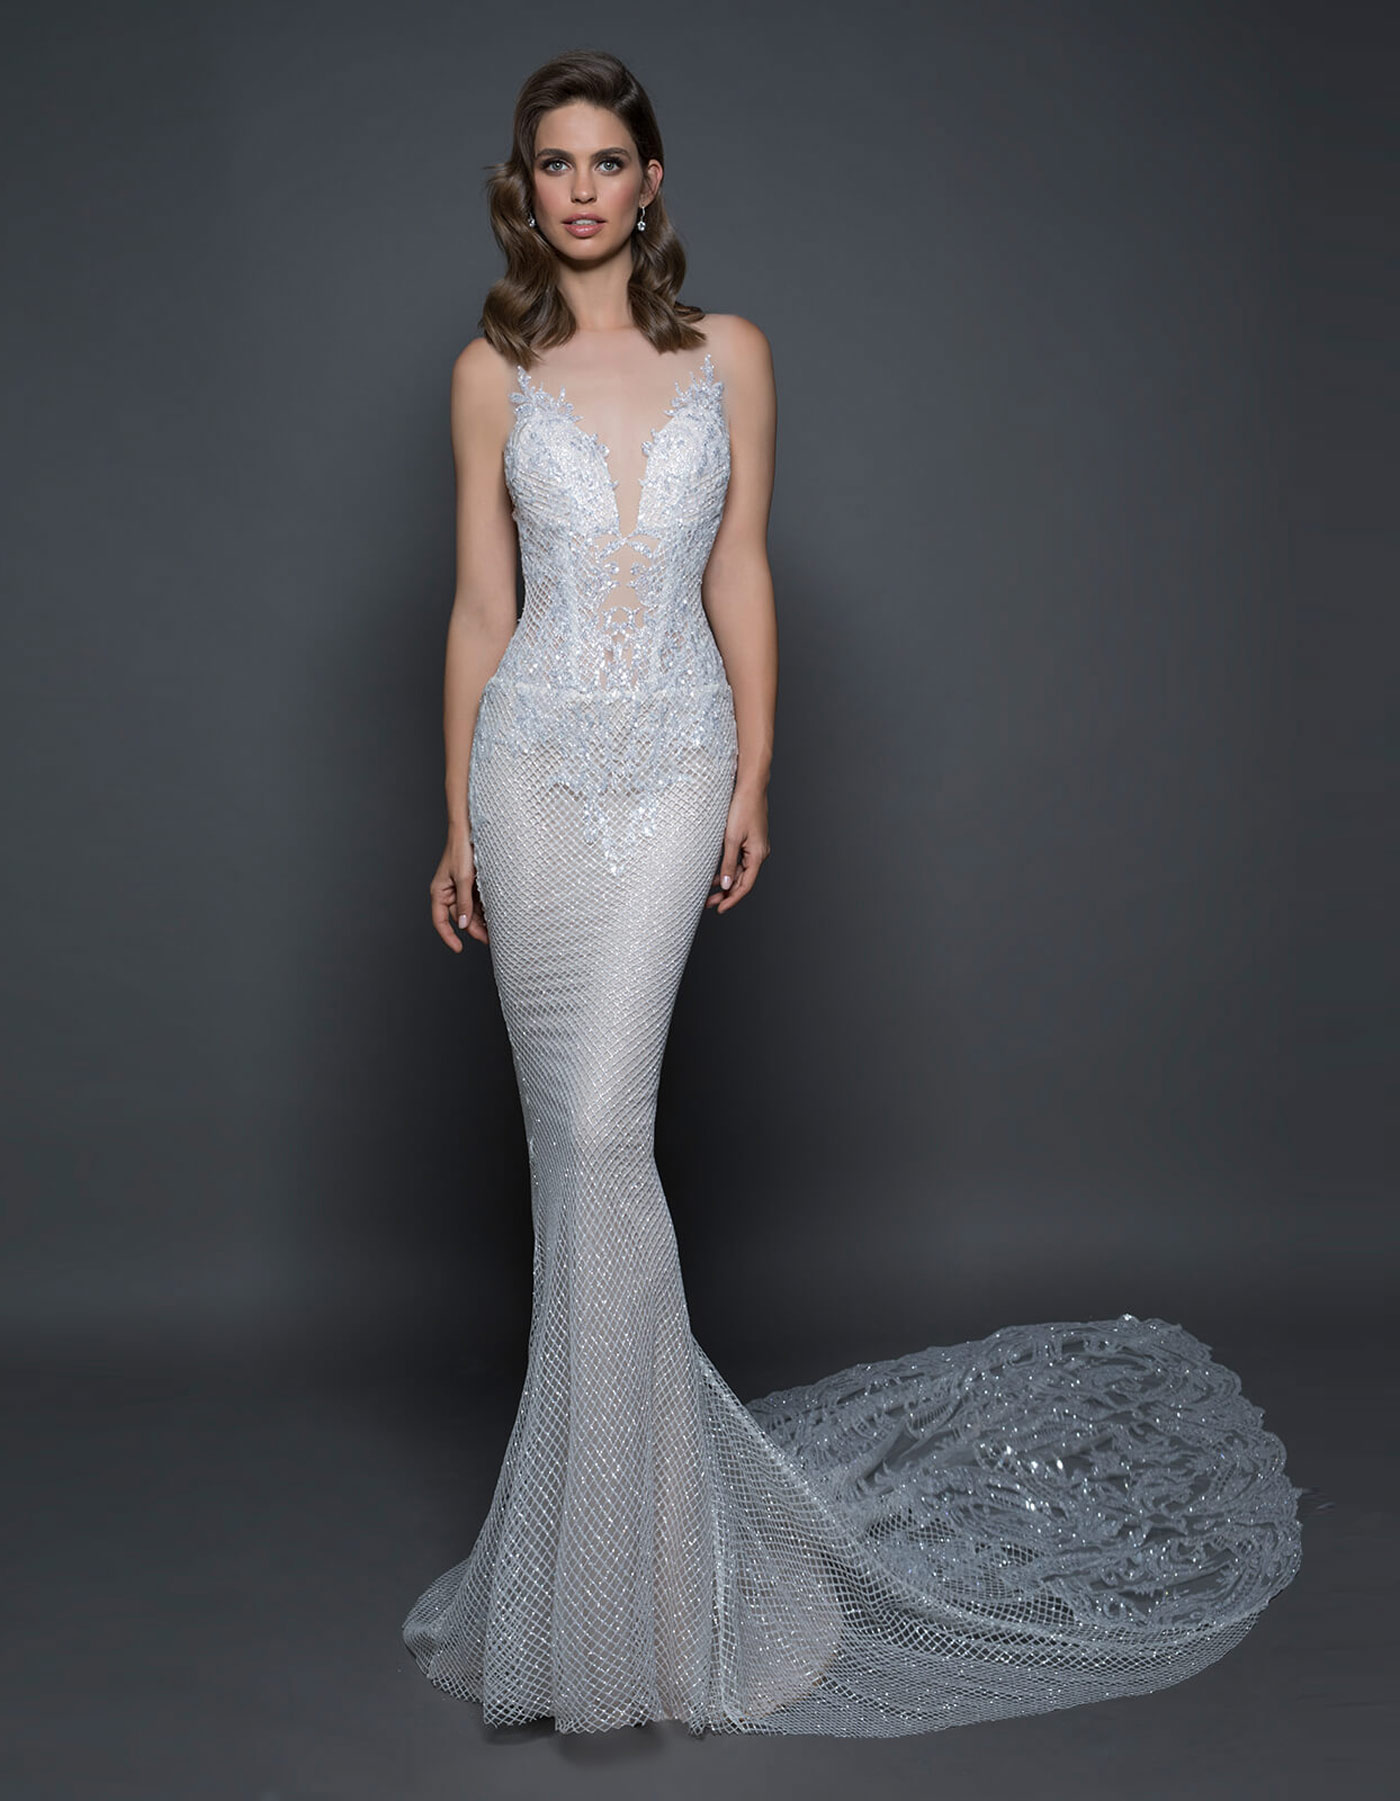 Glitter mermaid wedding dress | 14585 by Pnina Tornai Love